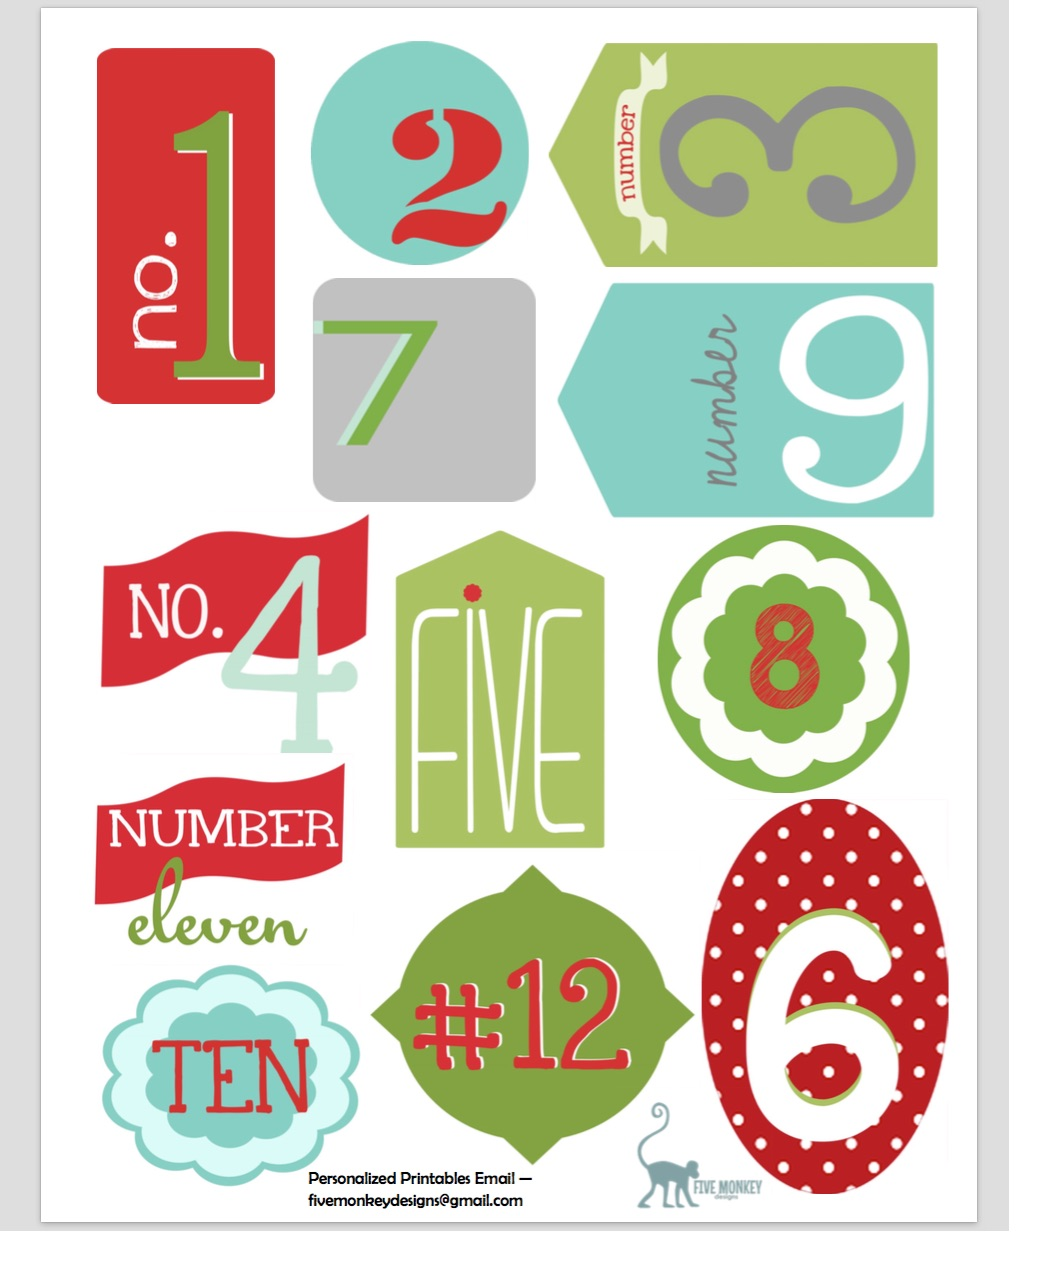 picture about 12 Days of Christmas Printable identified as Totally free 12 Times of Xmas Printable Tags By means of 5 Monkey